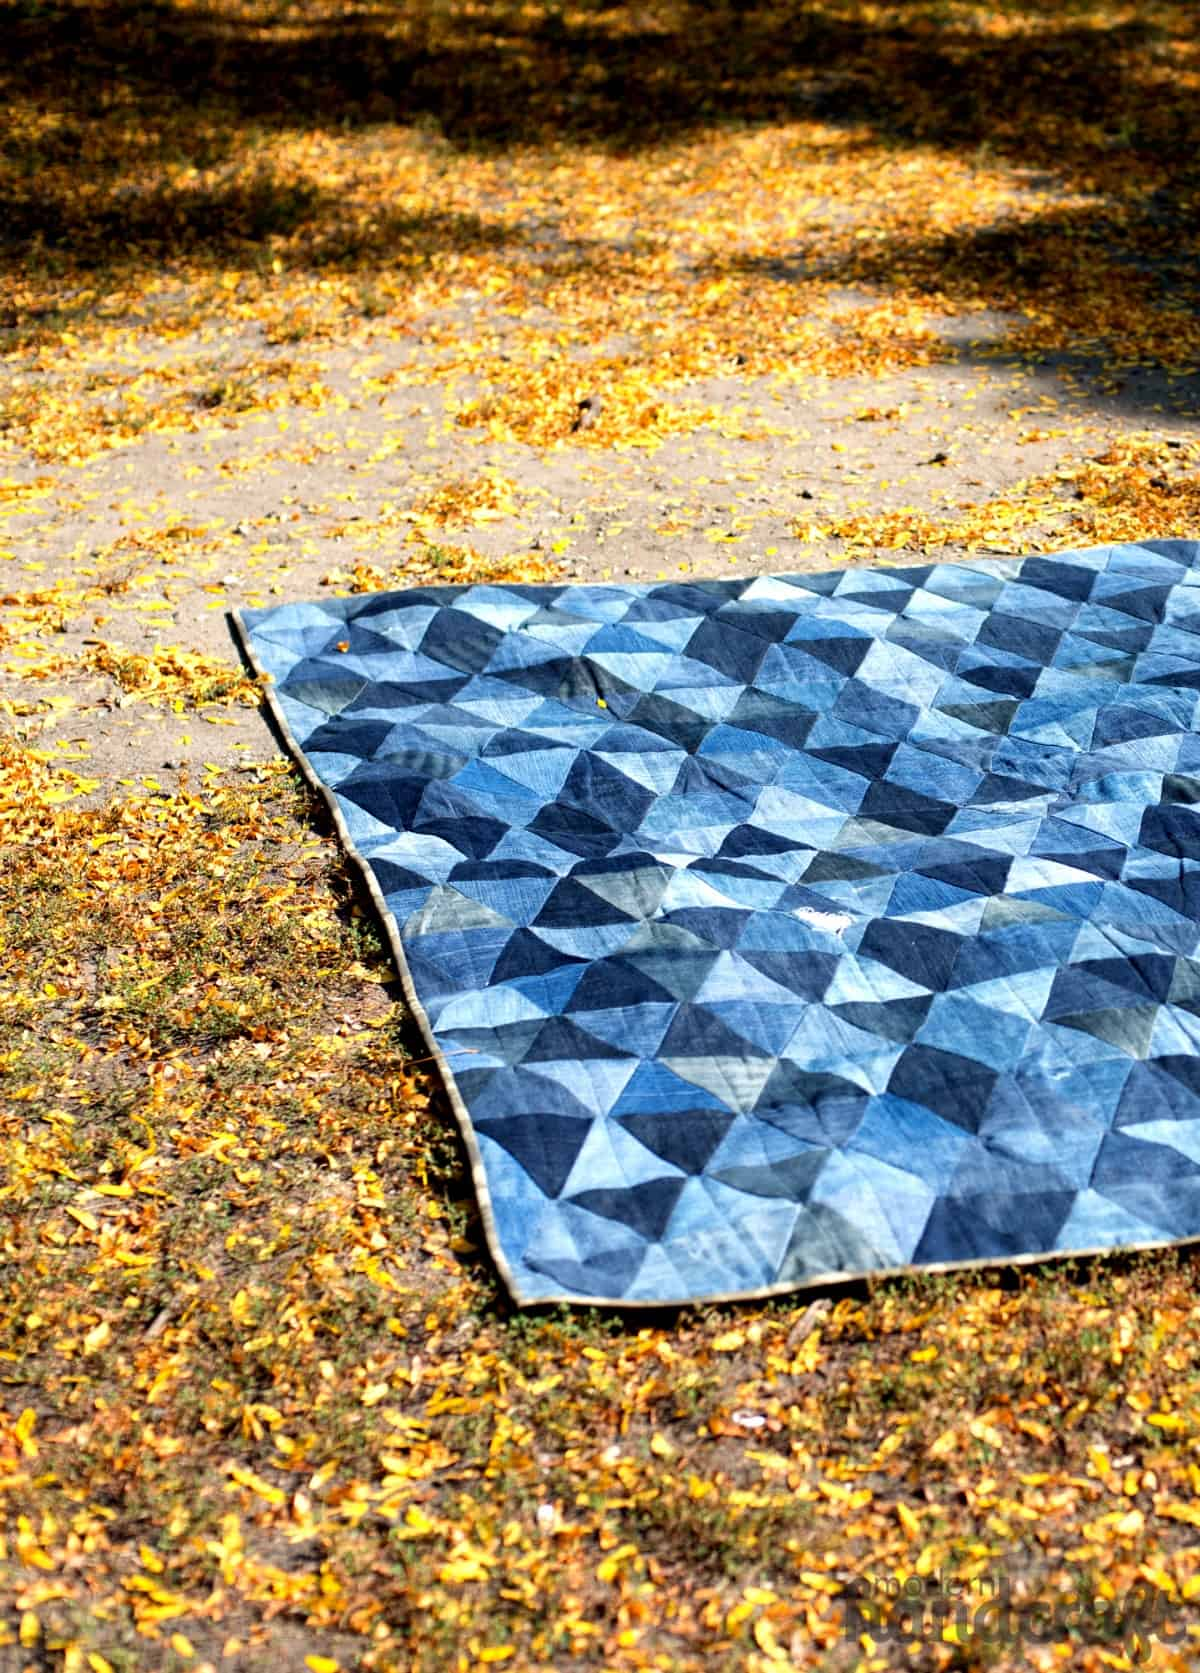 Denim triangle quilted picnic blanket